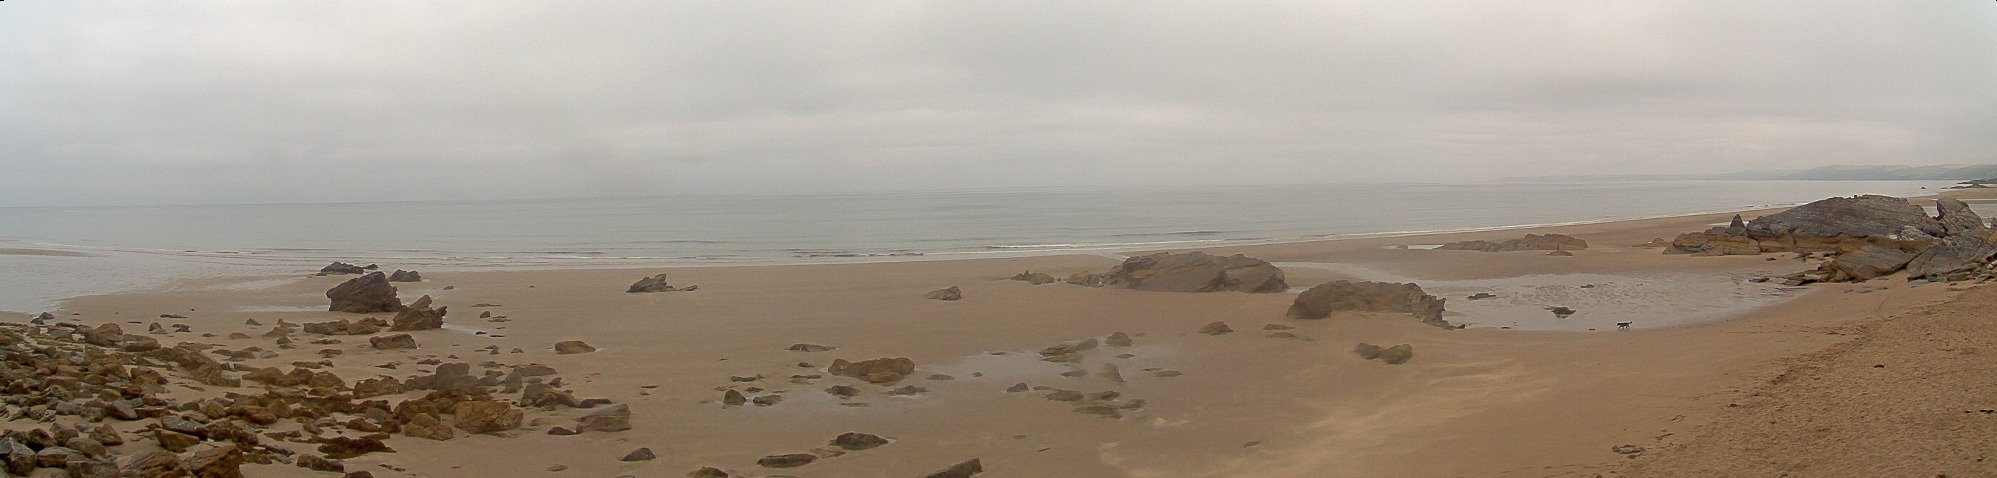 Latest webcam still for Whitsand Bay